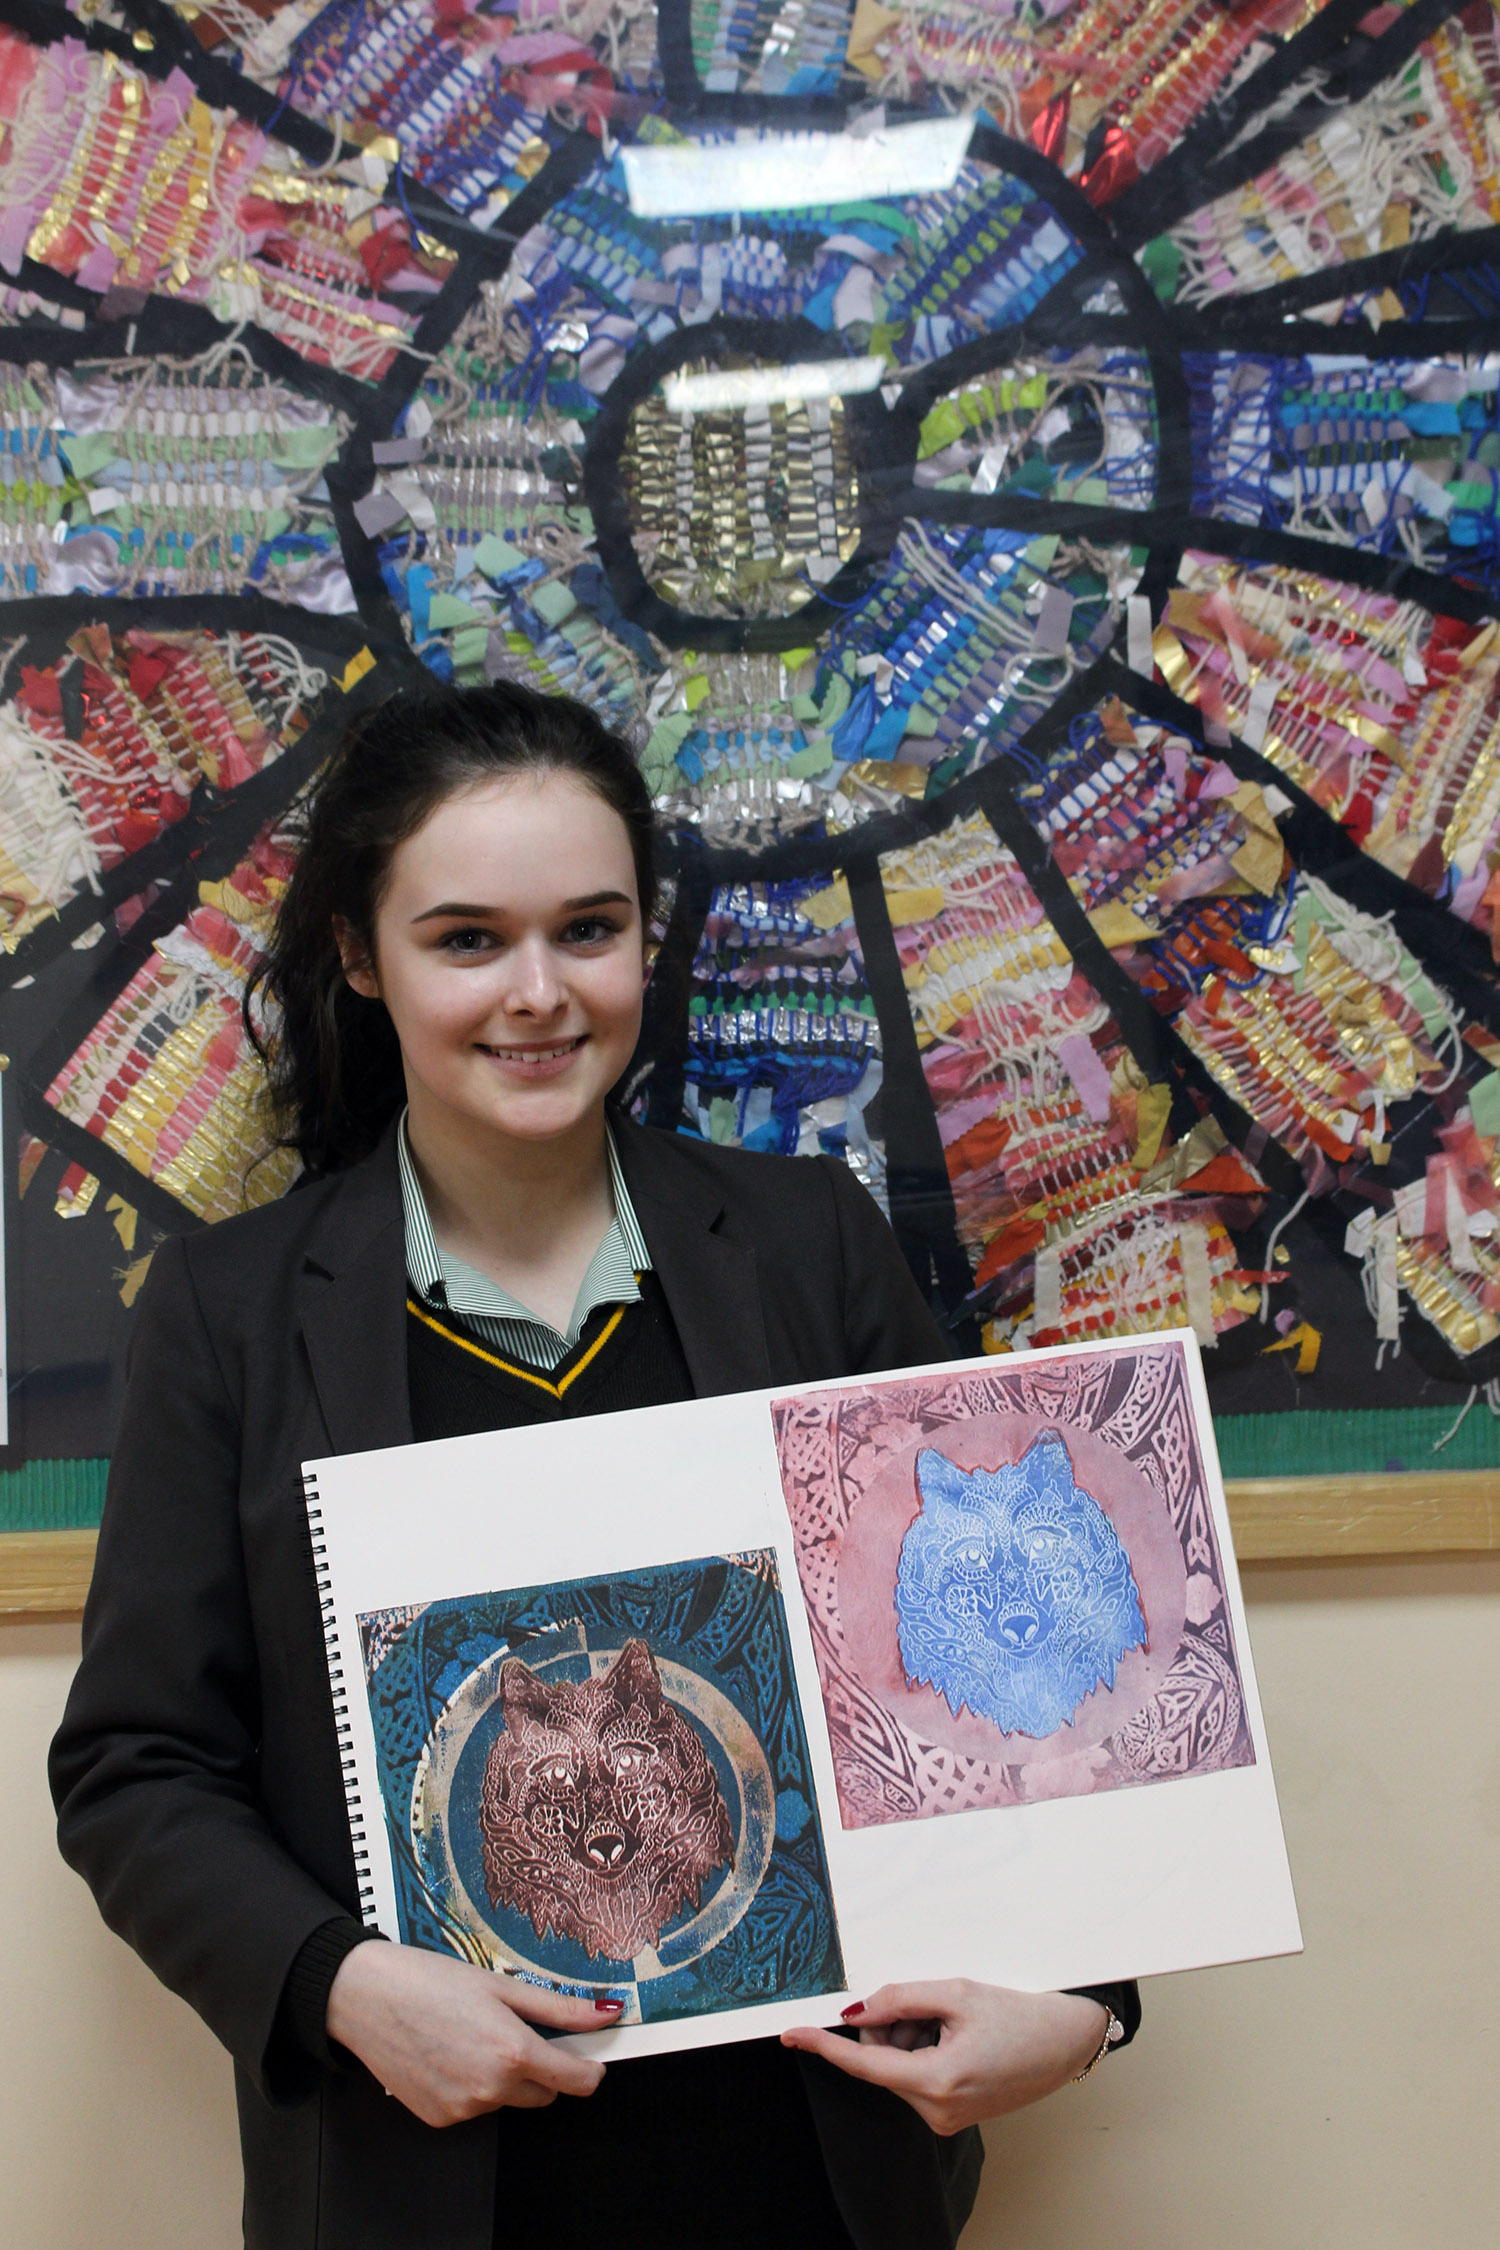 Alisha Whitten with some of her artwork